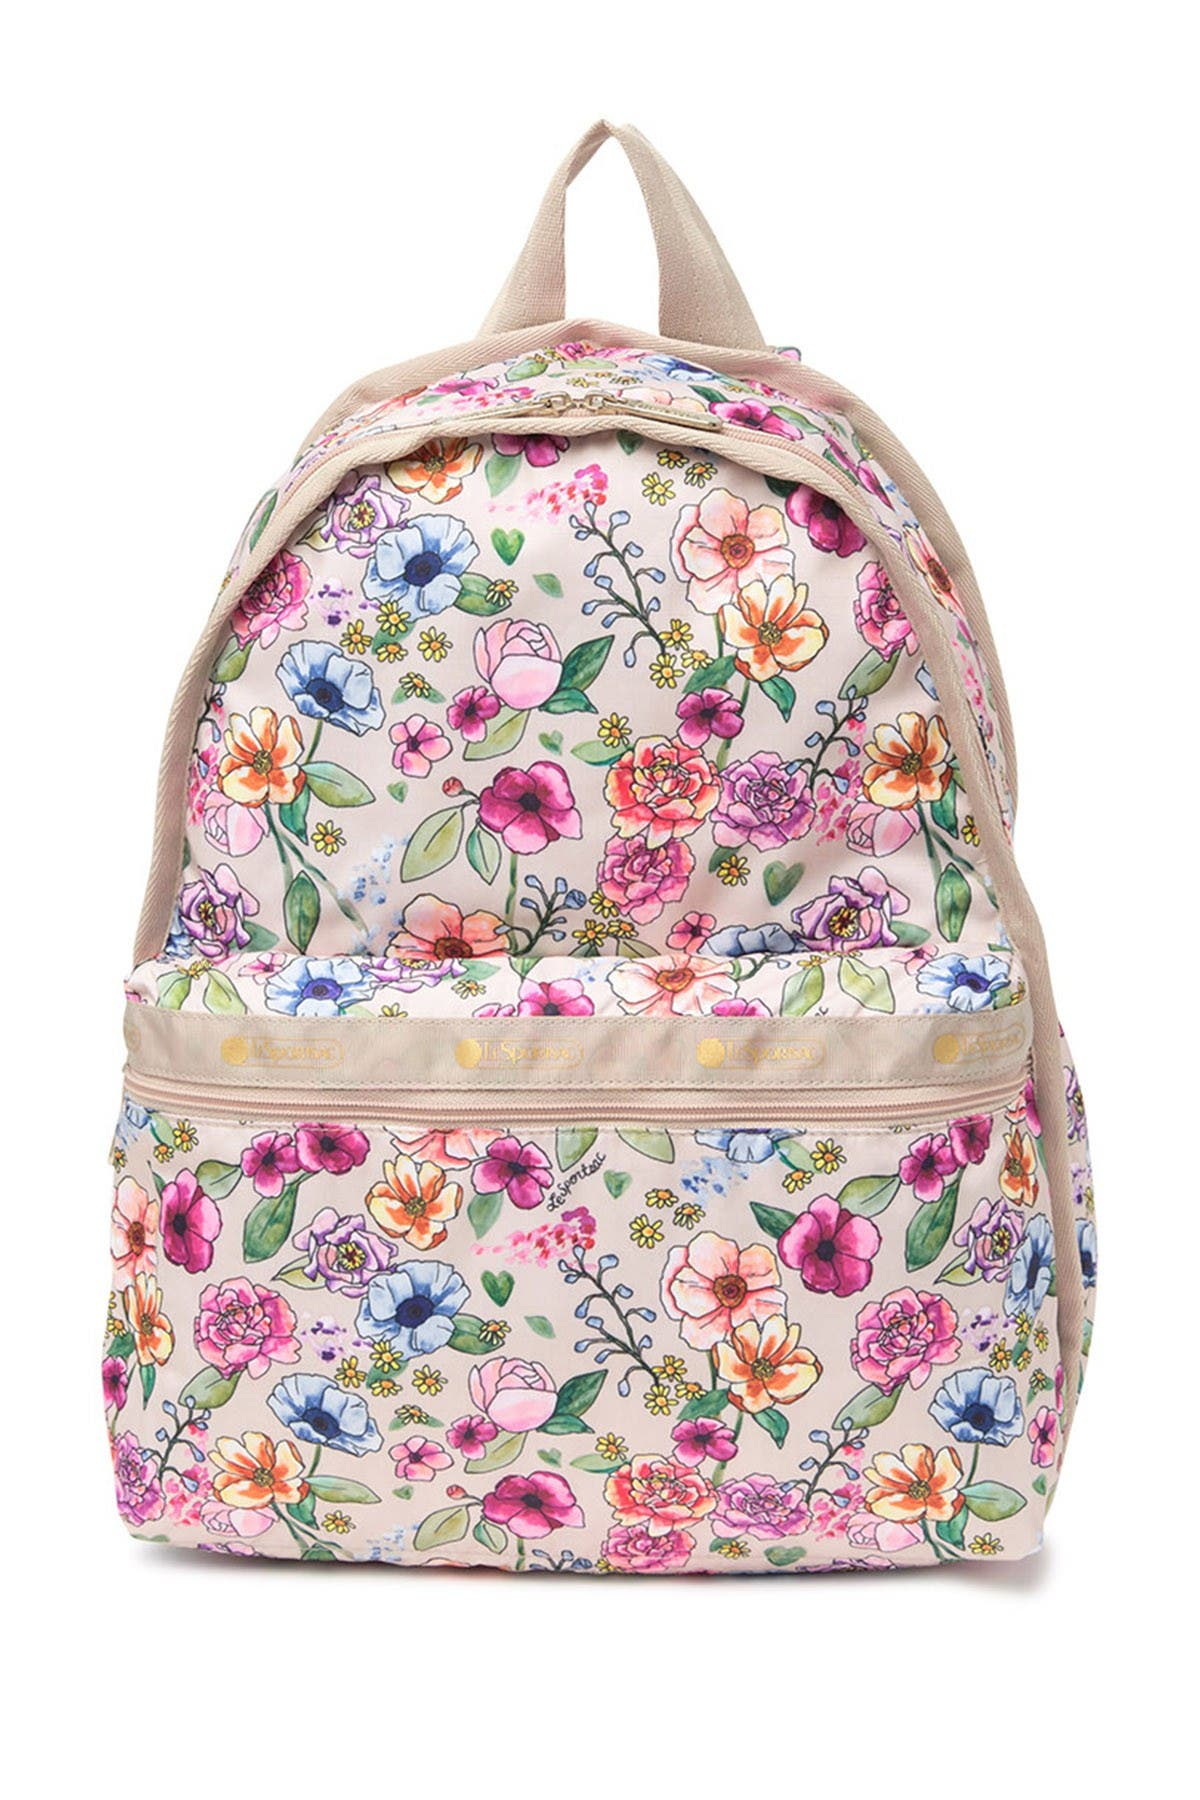 LeSportsac Basic Backpack at Nordstrom Rack